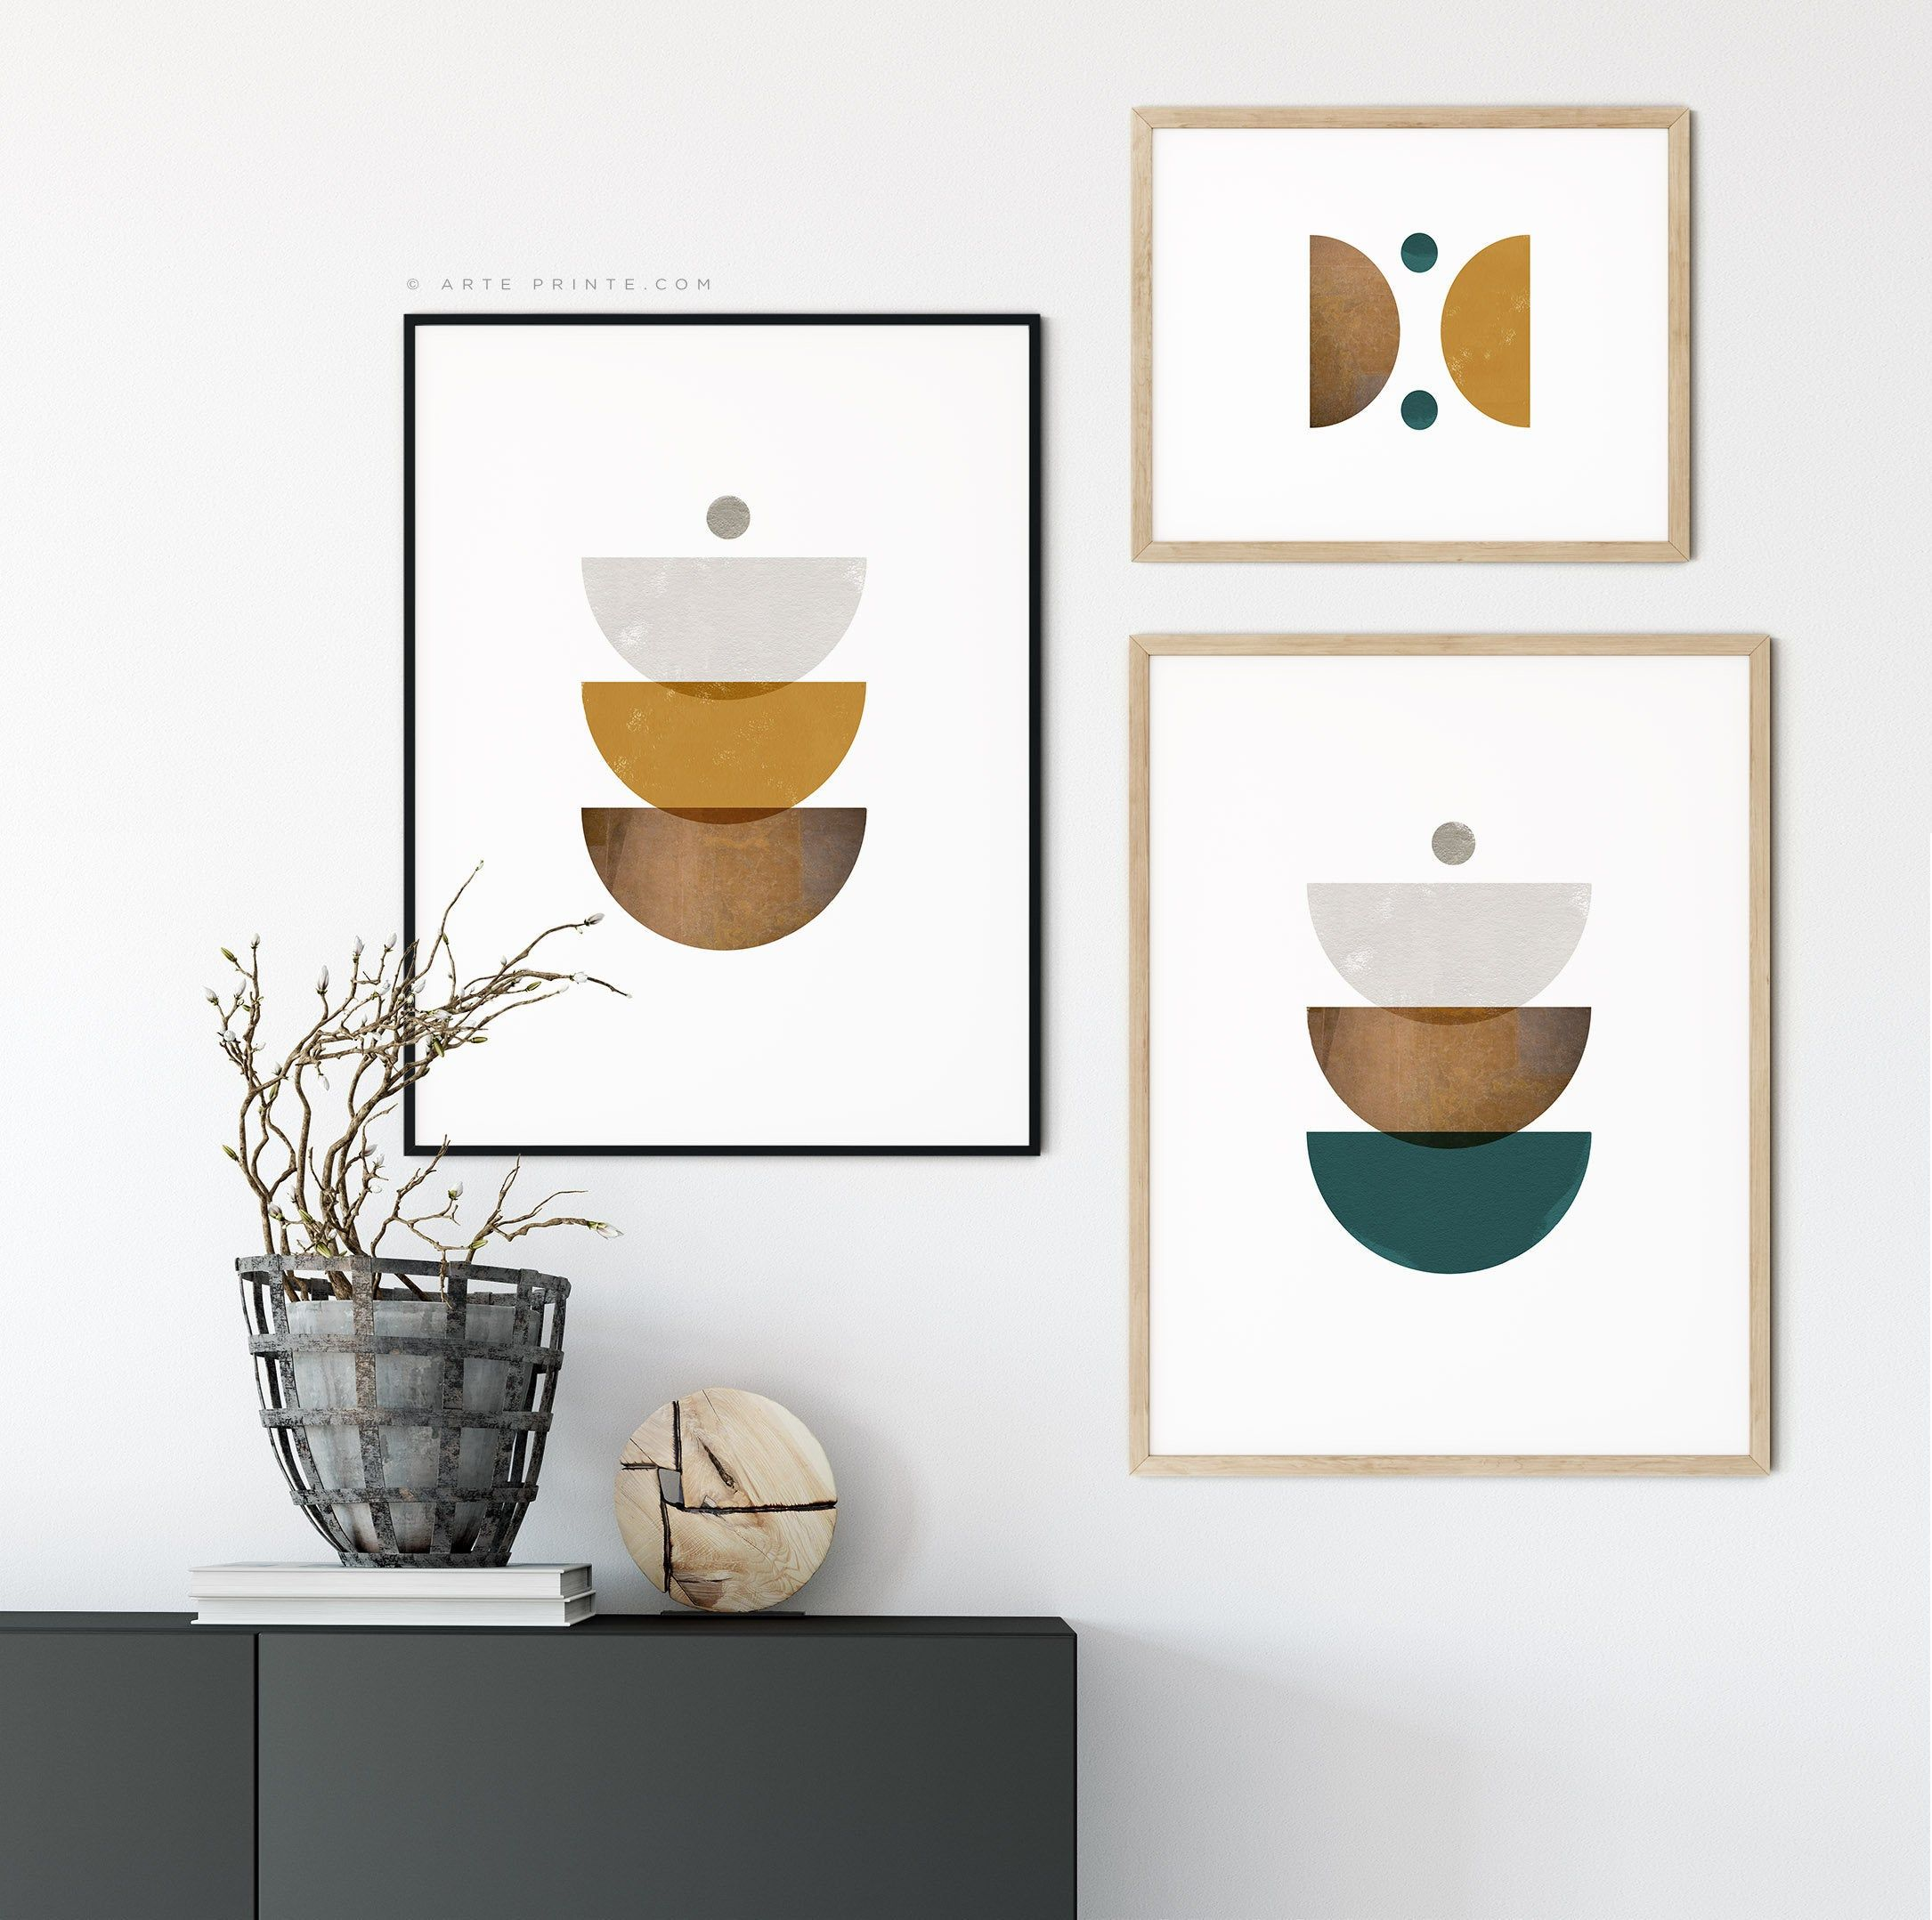 Excited To Share The Latest Addition To My Etsy Shop Diy Wall Art Prints Set Of 3 Geometric Abstract S Mid Century Wall Art Geometric Wall Art Modern Art Diy